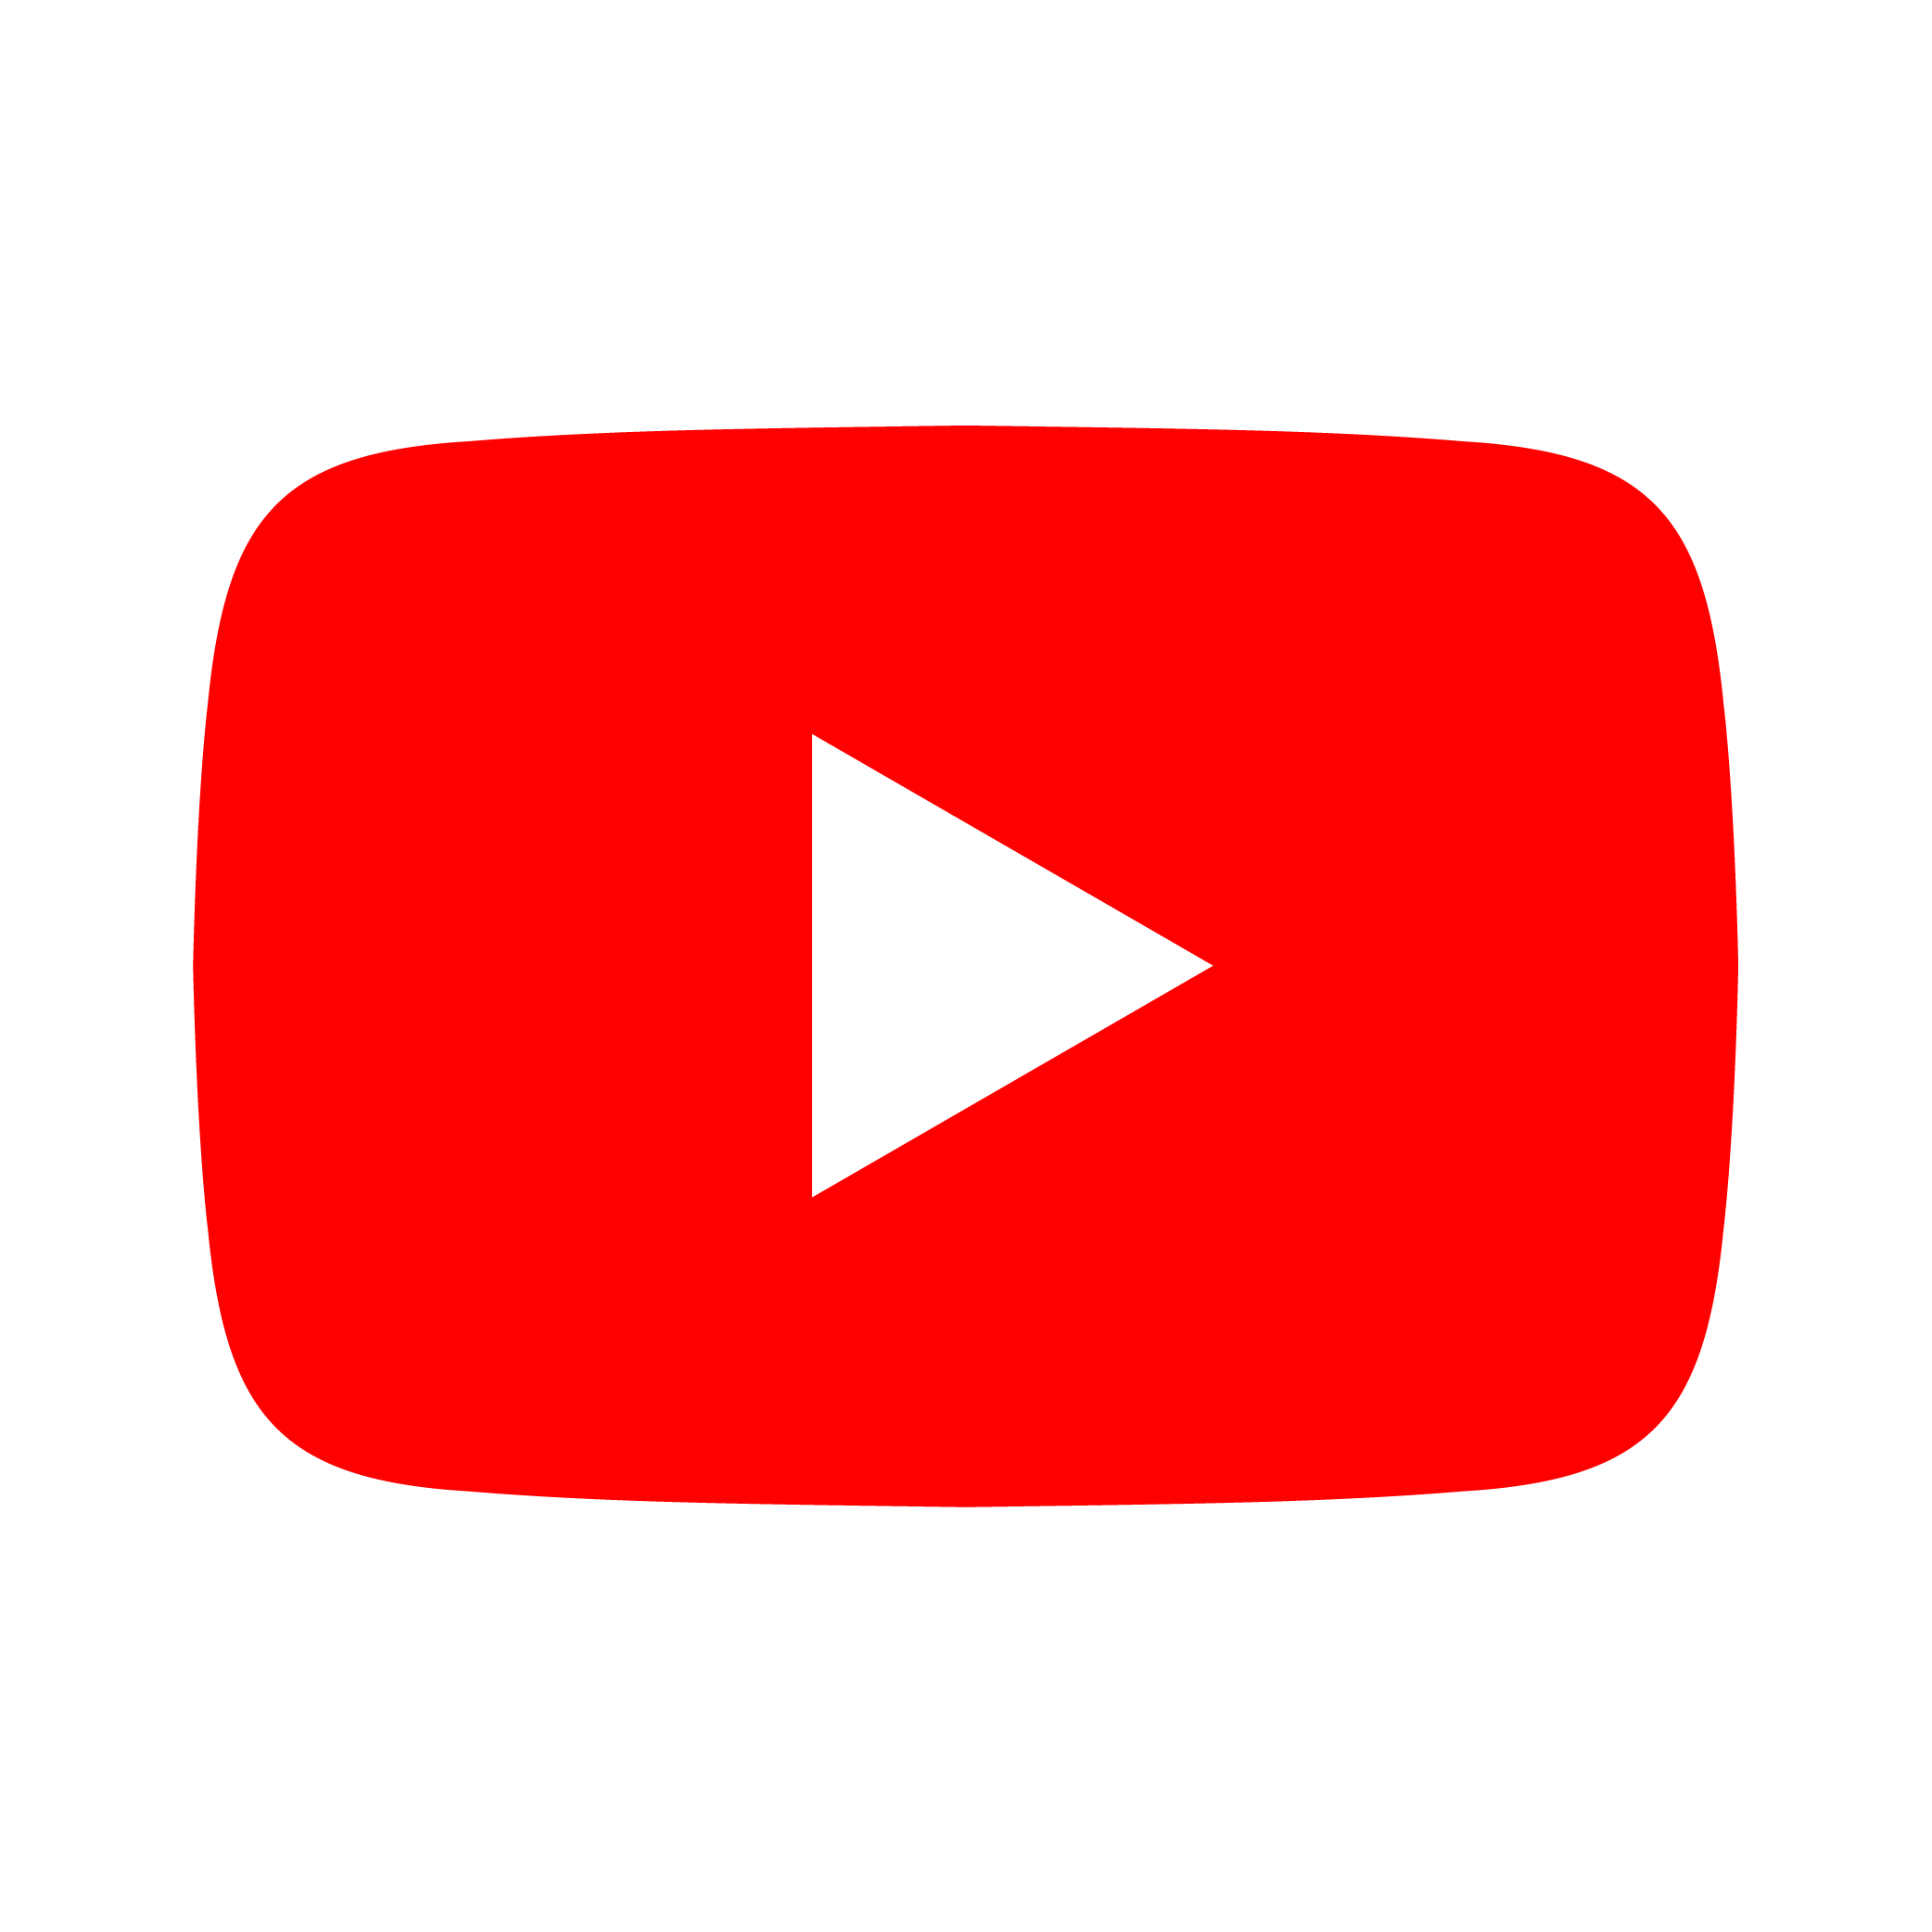 Get More YouTube Views With These Thumbnail Tips